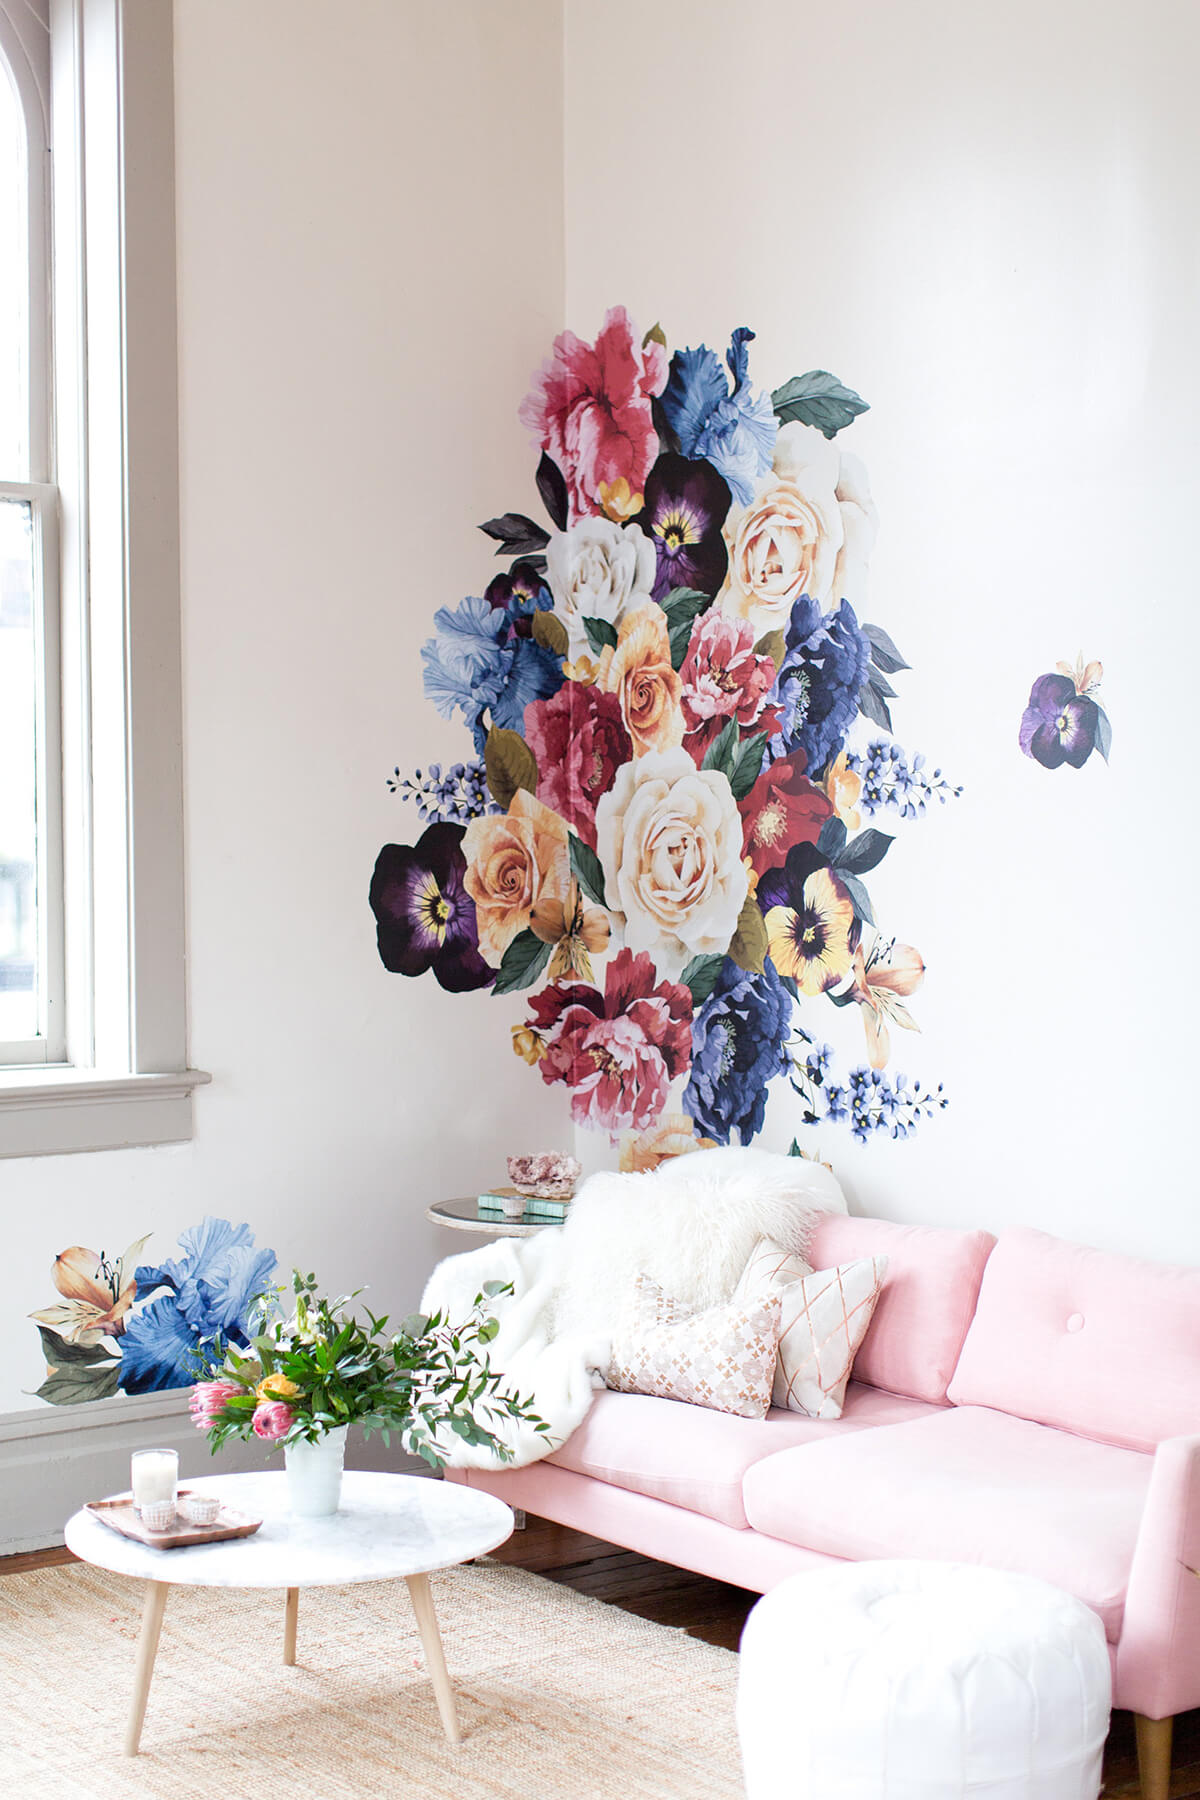 Classic Floral Bouquet Flowered Wall Mural